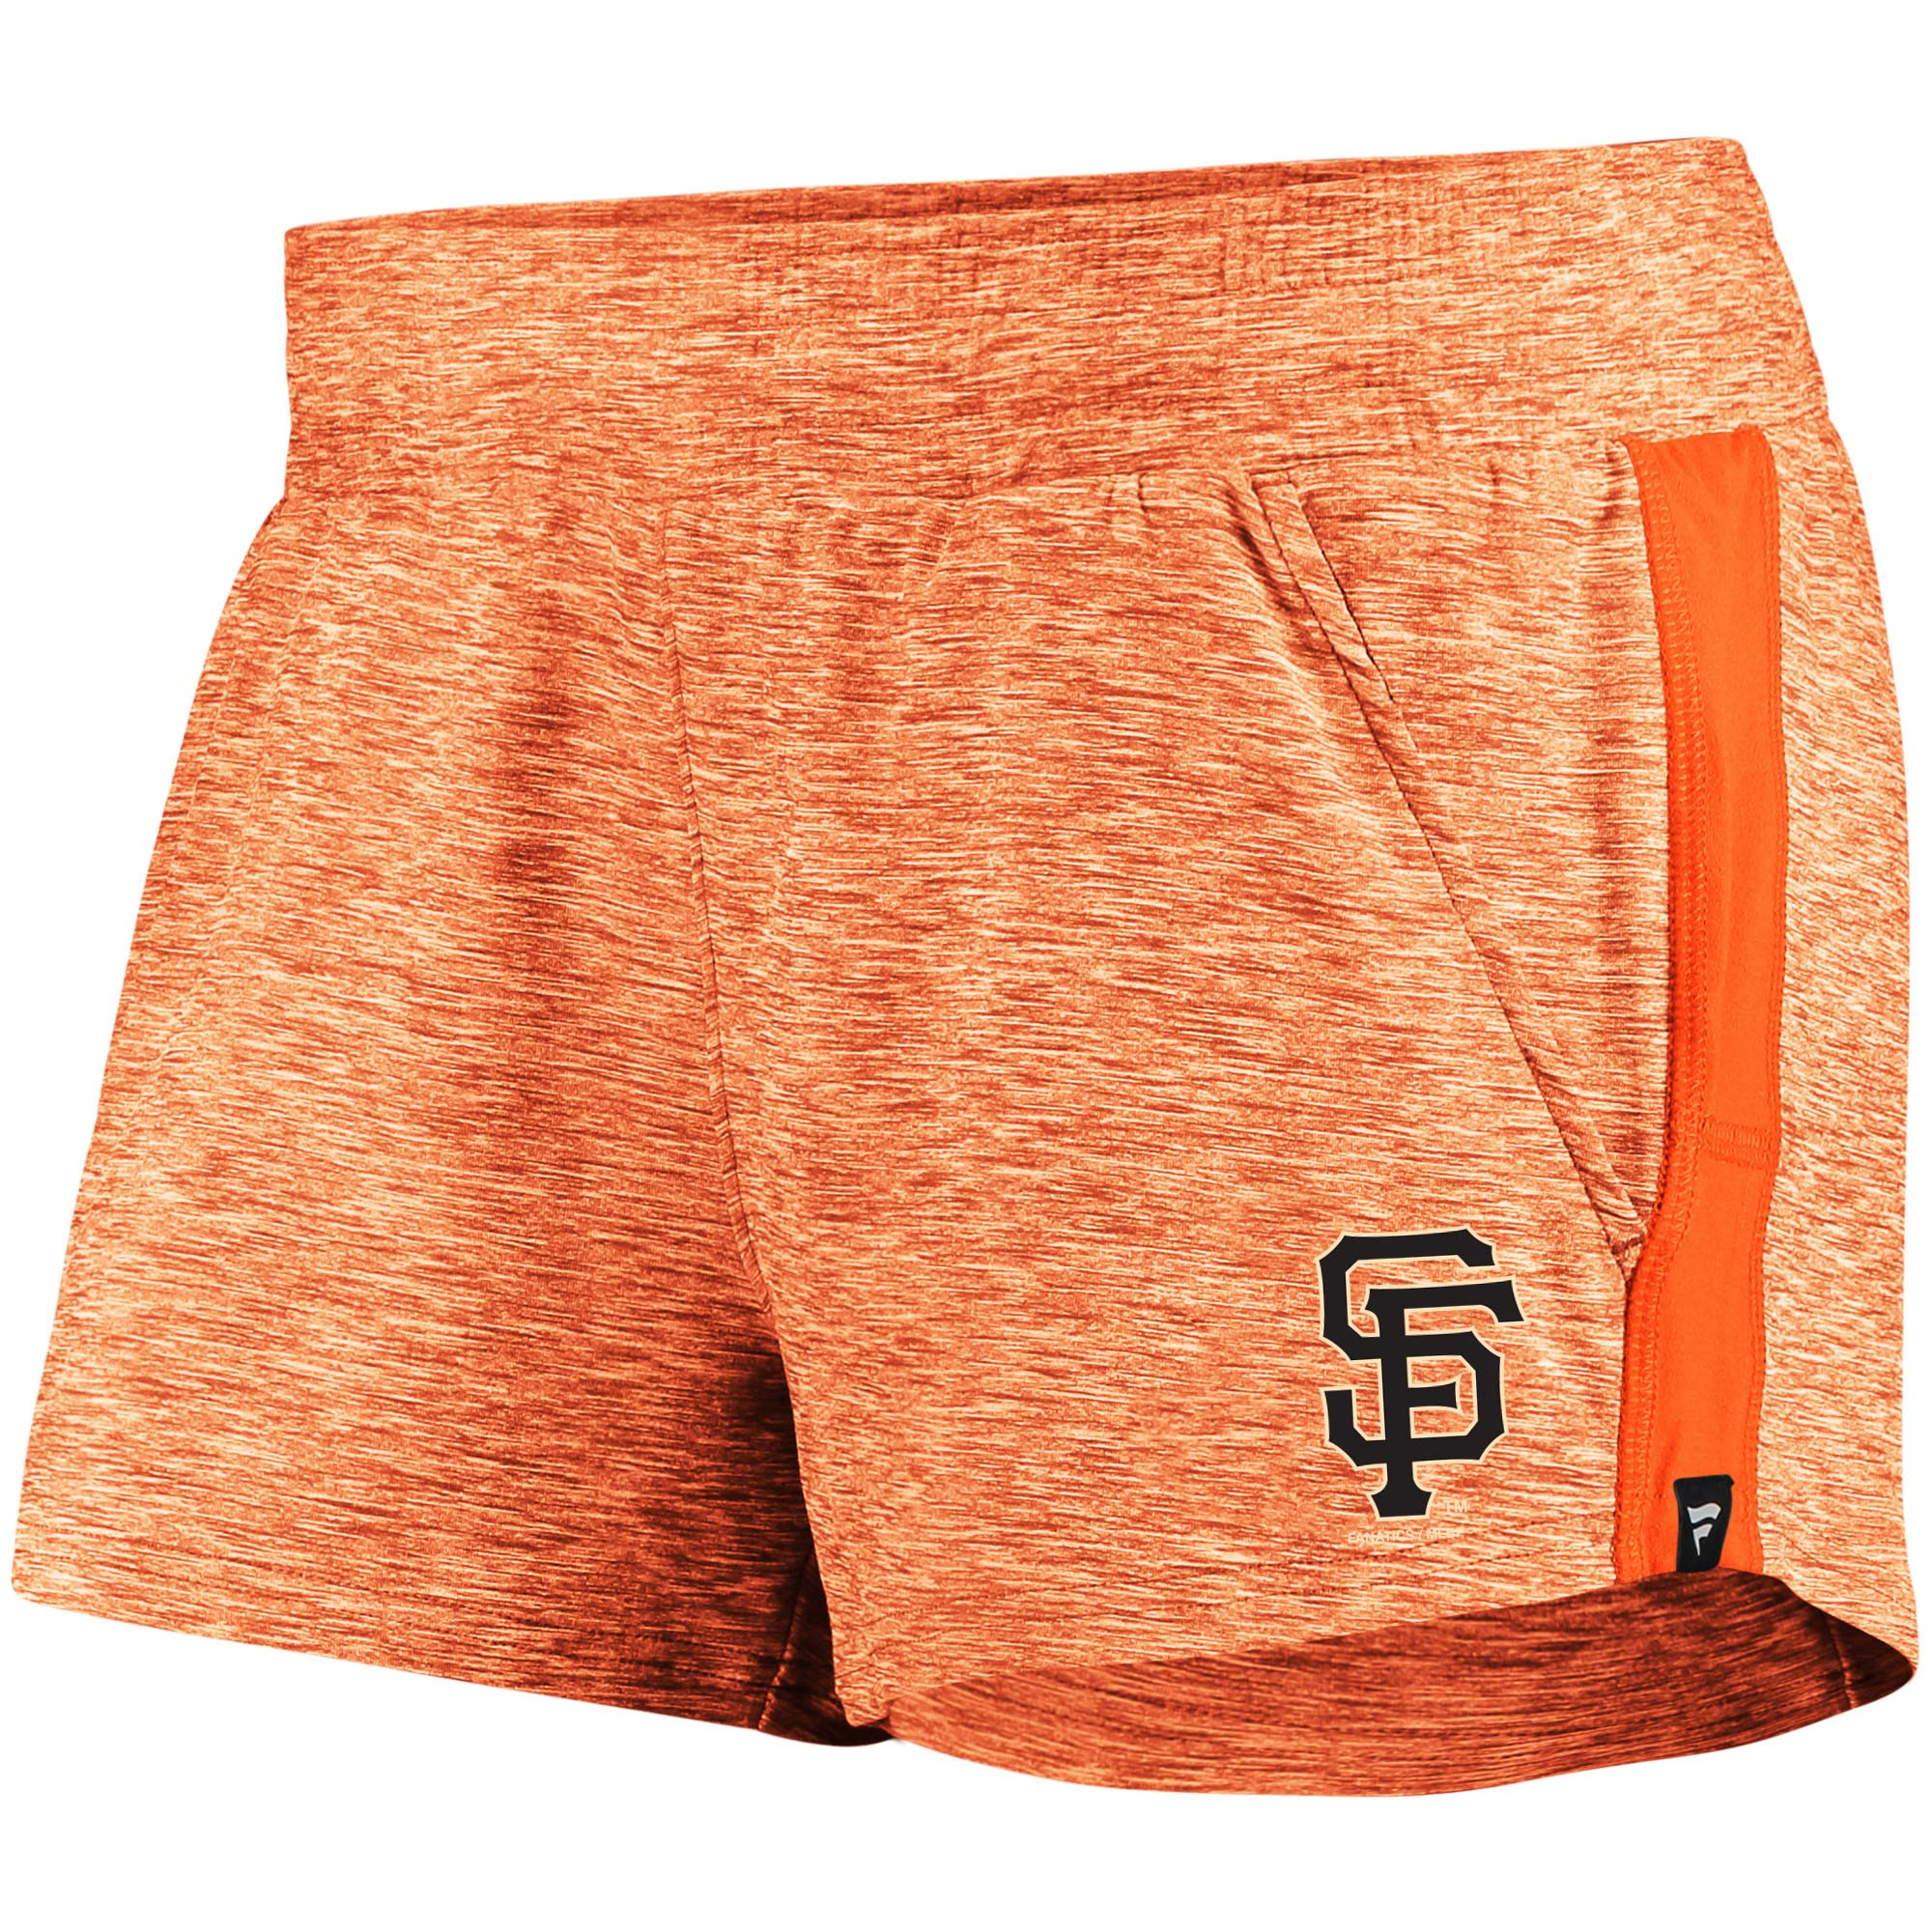 San Francisco Giants Fanatics Branded Women's Made To Move Running Shorts - Heathered Orange/Orange